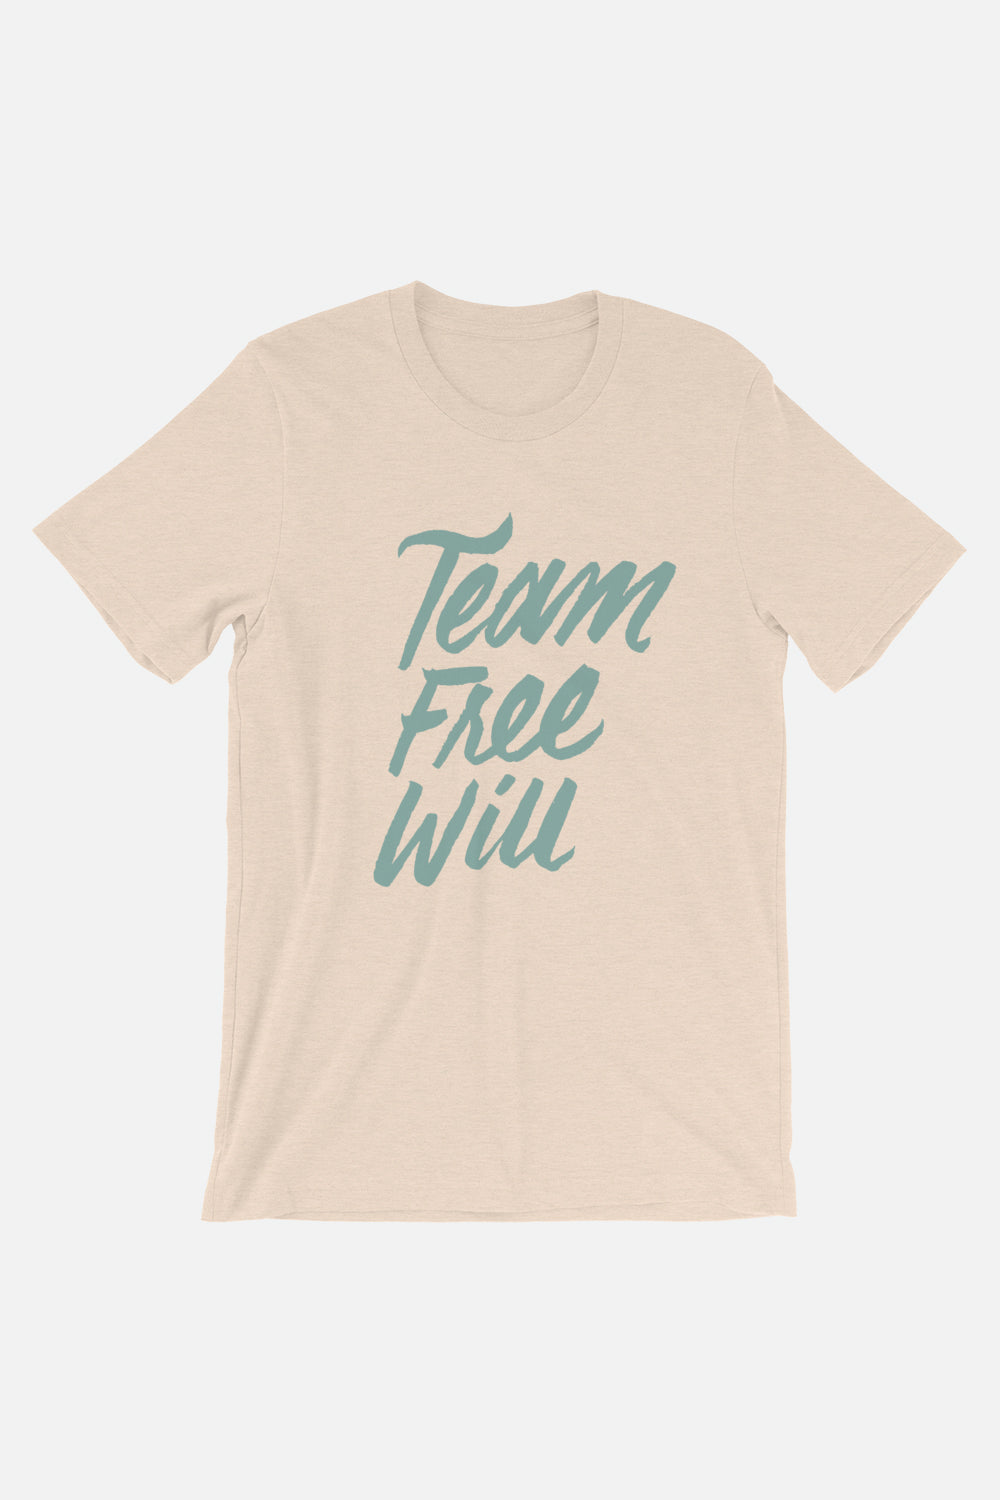 Team Free Will Unisex T-Shirt